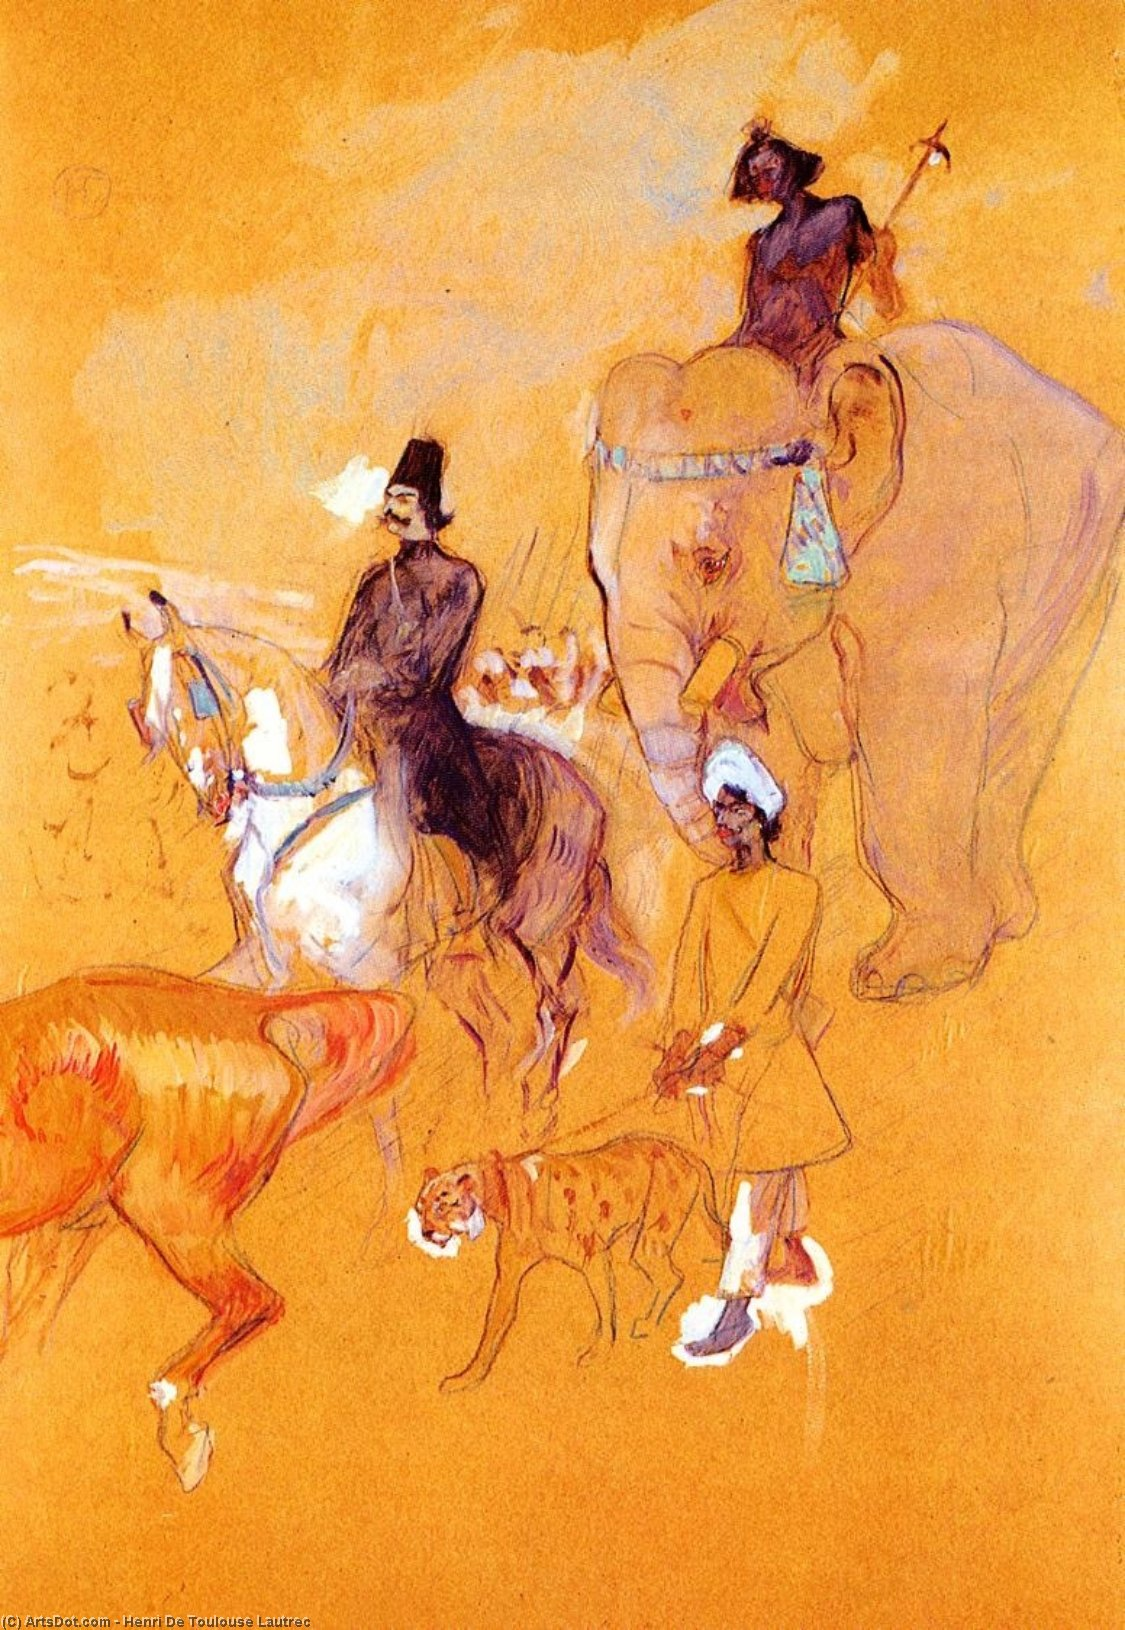 The Procession of the Raja, 1895 by Henri De Toulouse Lautrec (1864-1901, France)